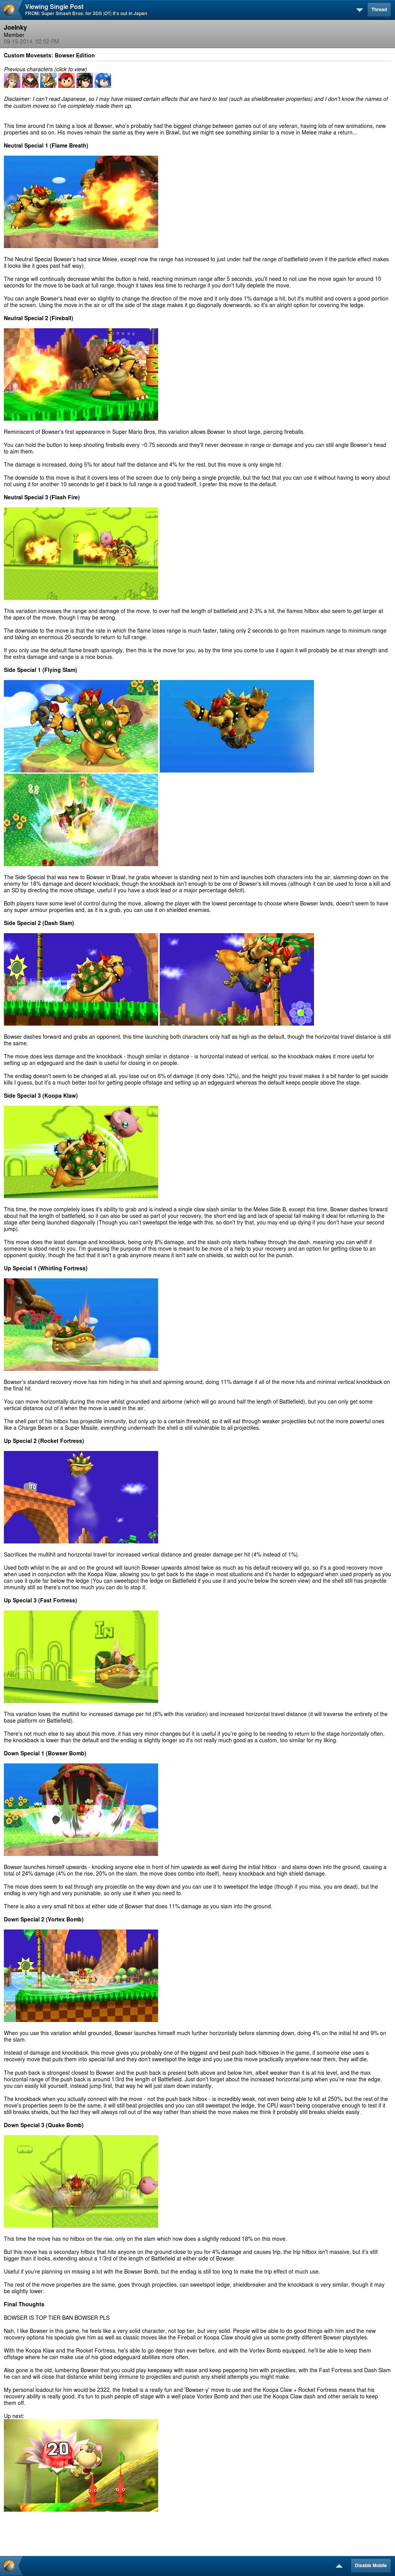 Bowser S Custom Moves Super Smash Brothers Know Your Meme